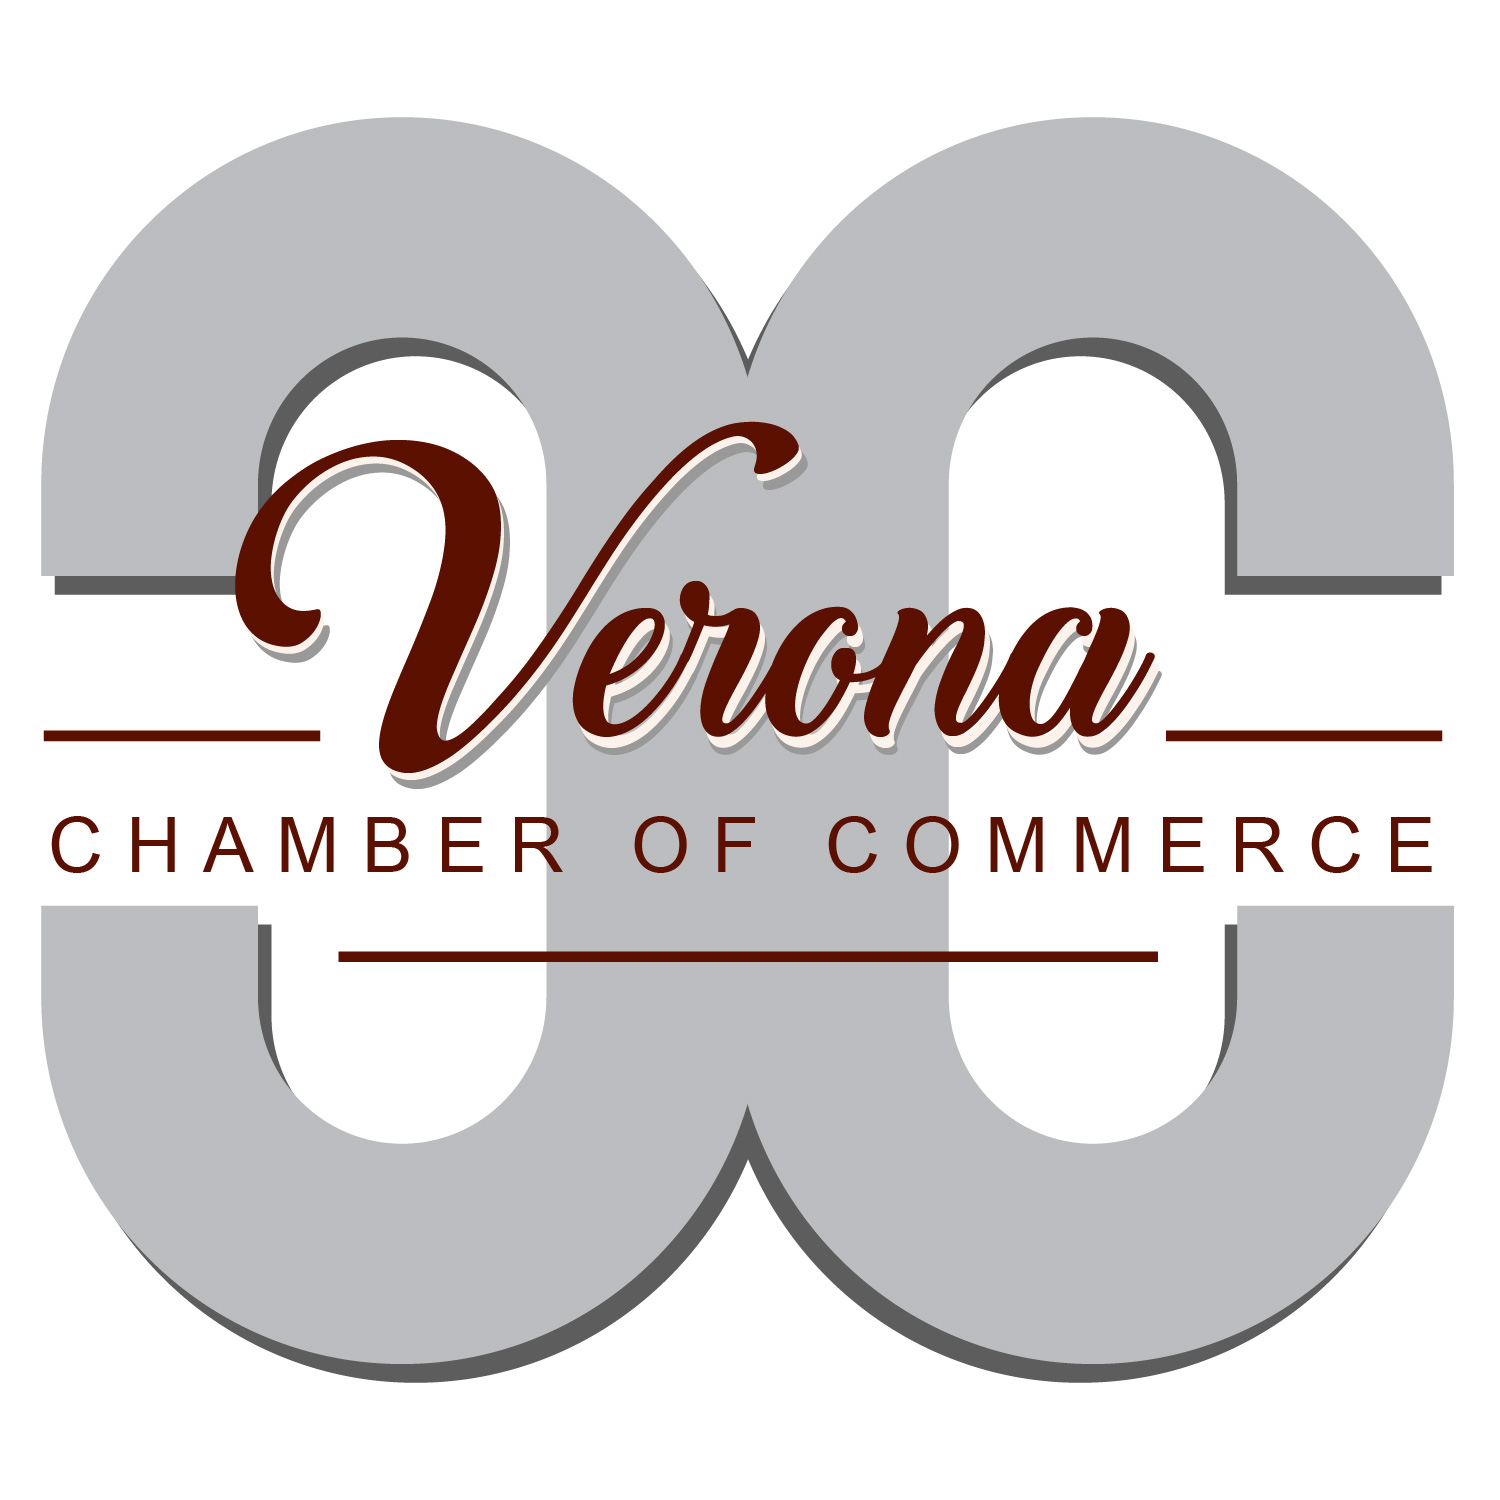 Verona Chamber of Commerce